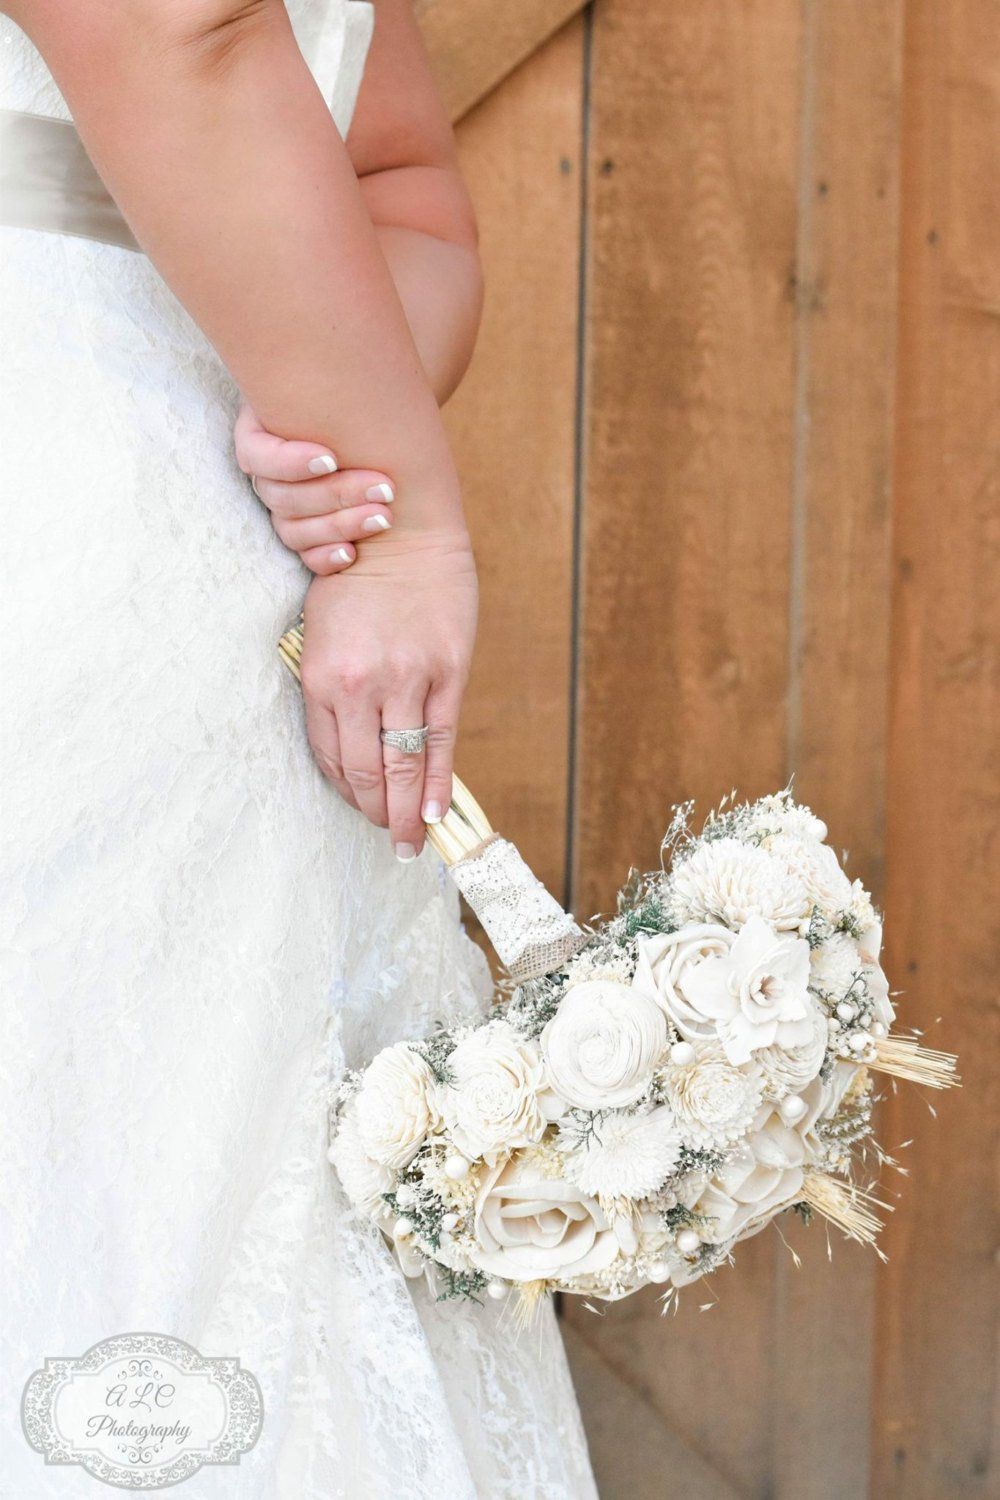 Ivory Wedding Bouquet Made With Sola Flowers - Choose Your Colors Bridal Made To Order Alternative Bouquet Bridesmaids